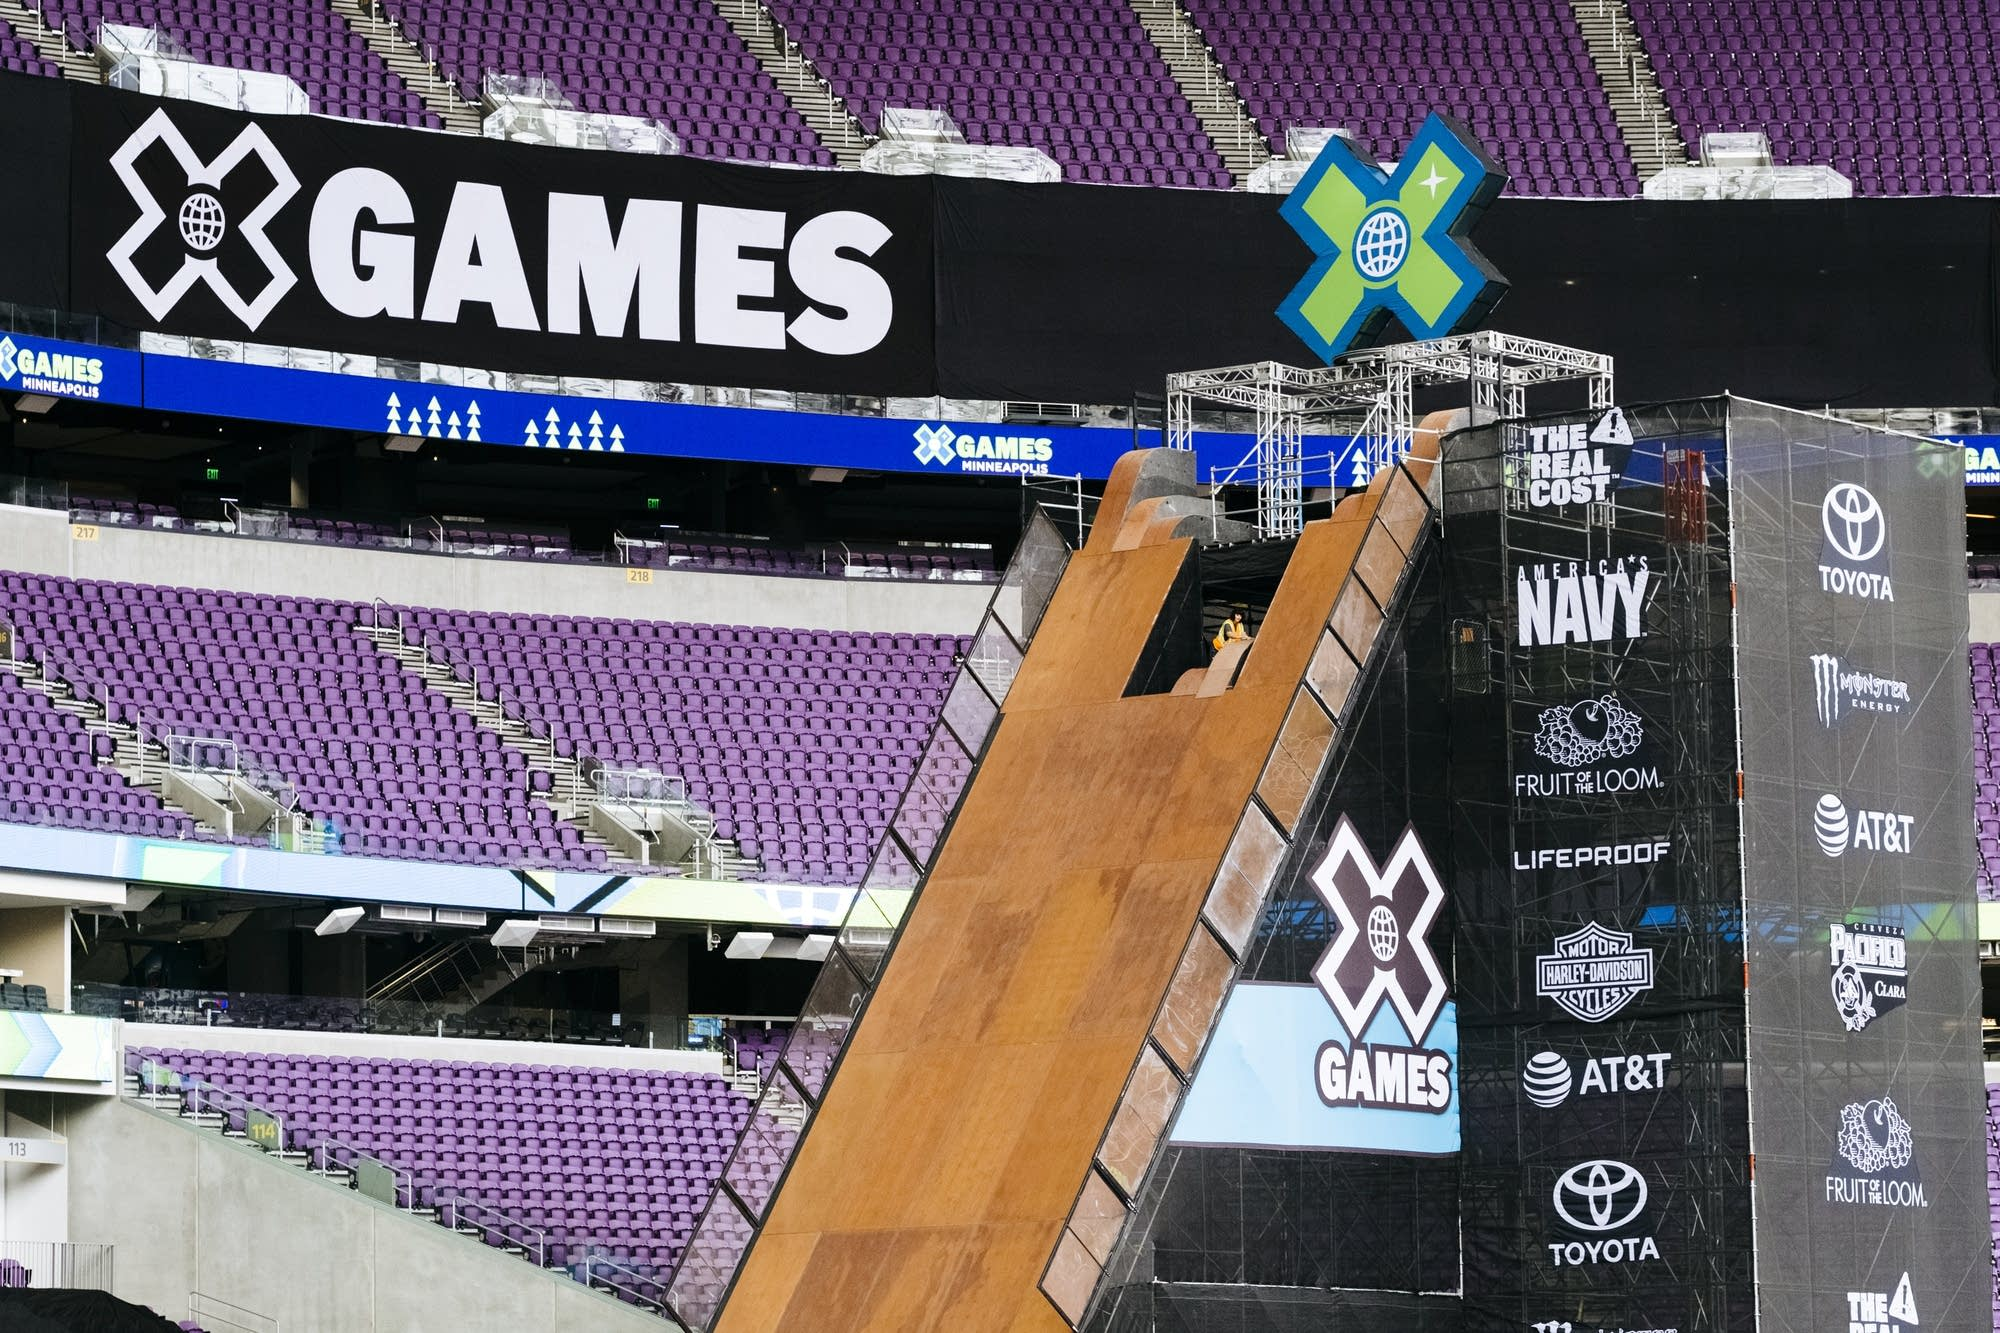 The Mega Ramp towers over the X Games park.